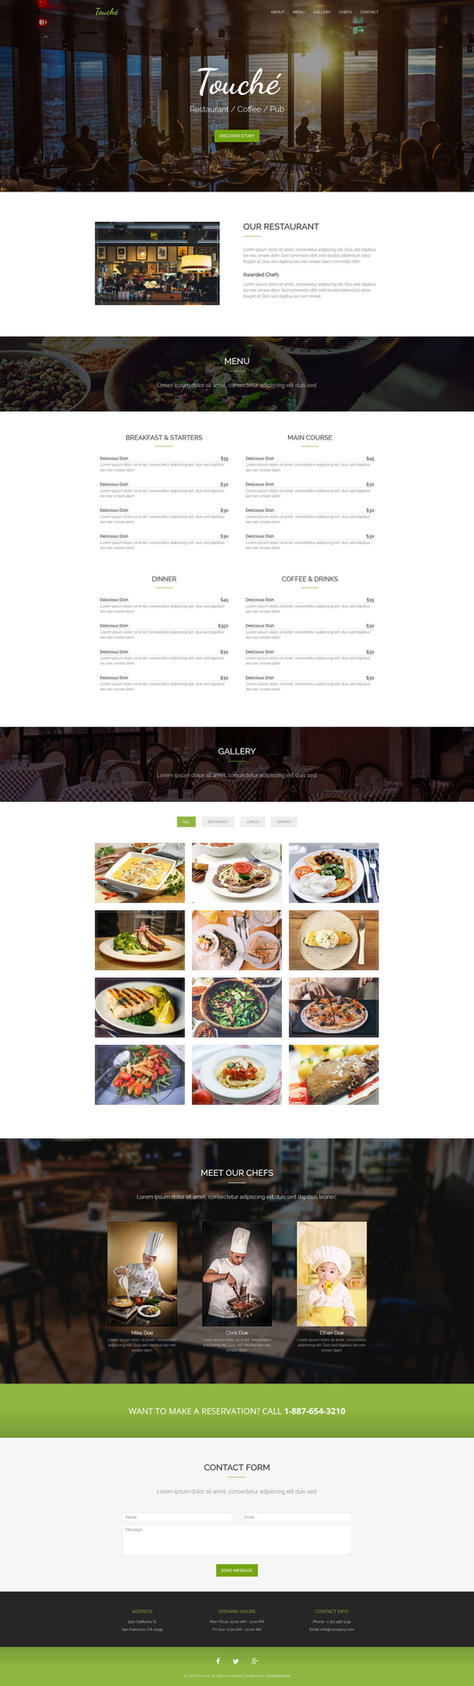 Touche - Free Restaurant Website Template by templatewire